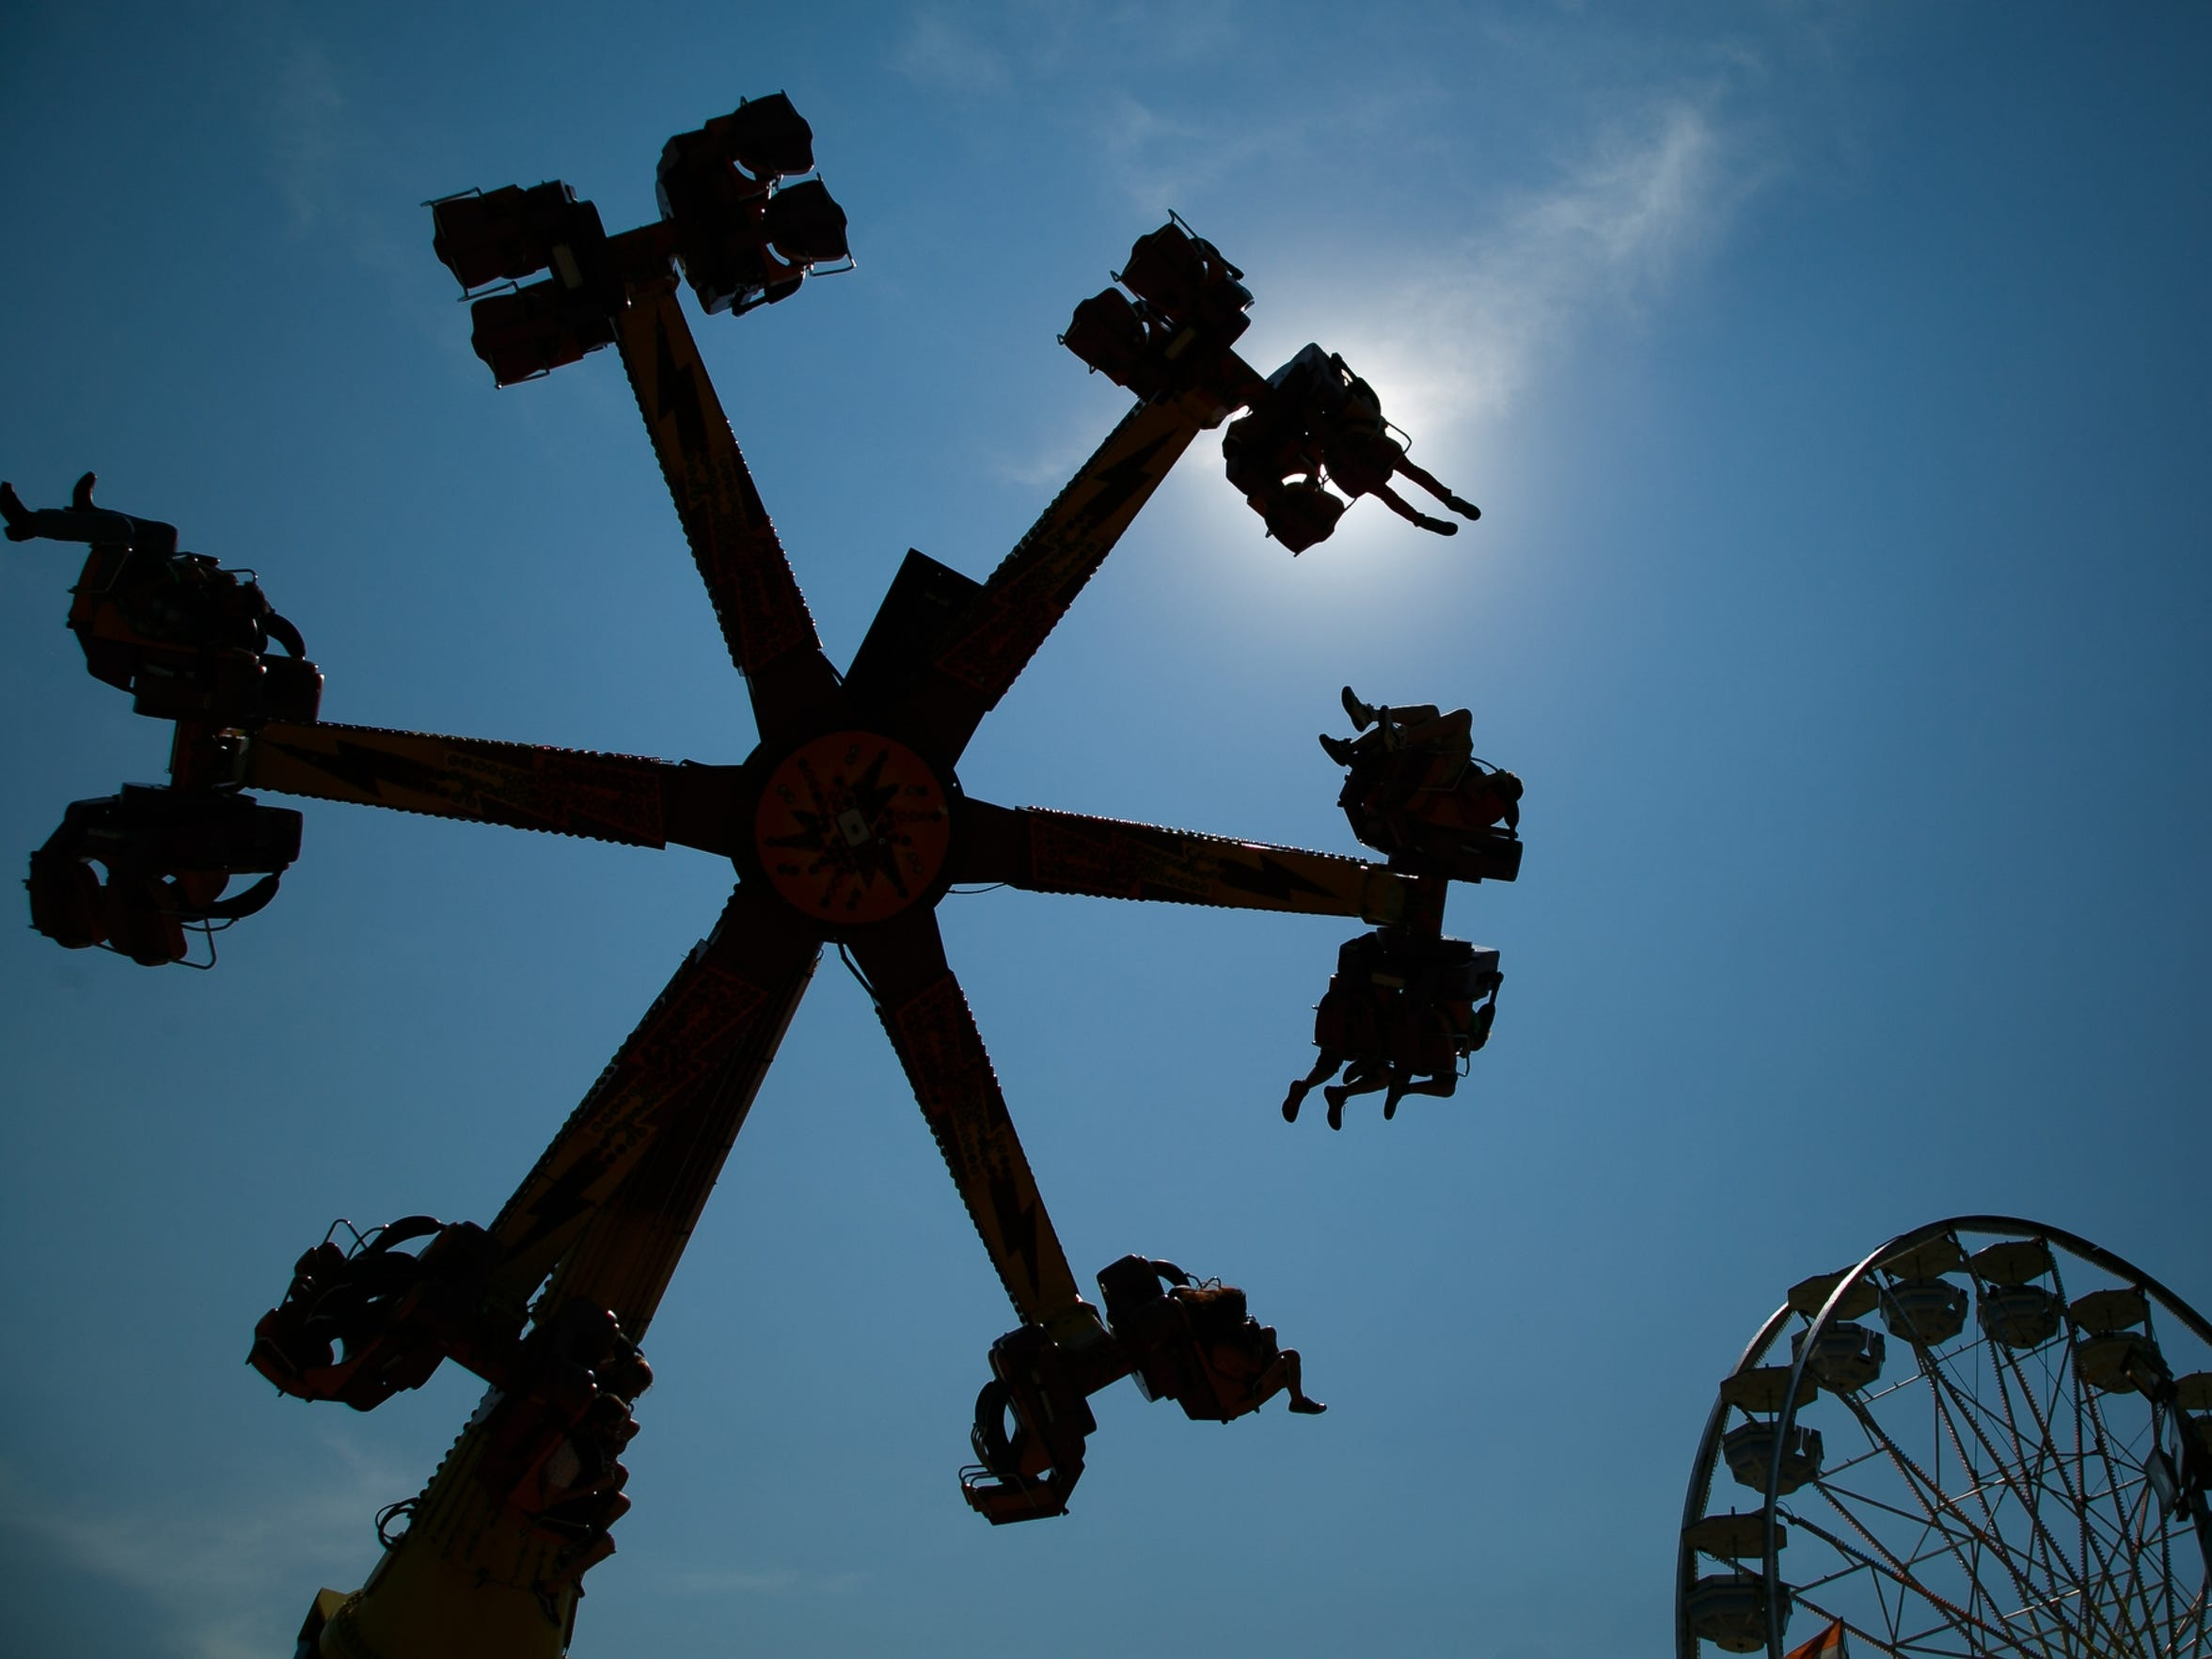 Fairgoers take a spin on rides at the Midway at the Iowa State Fair.